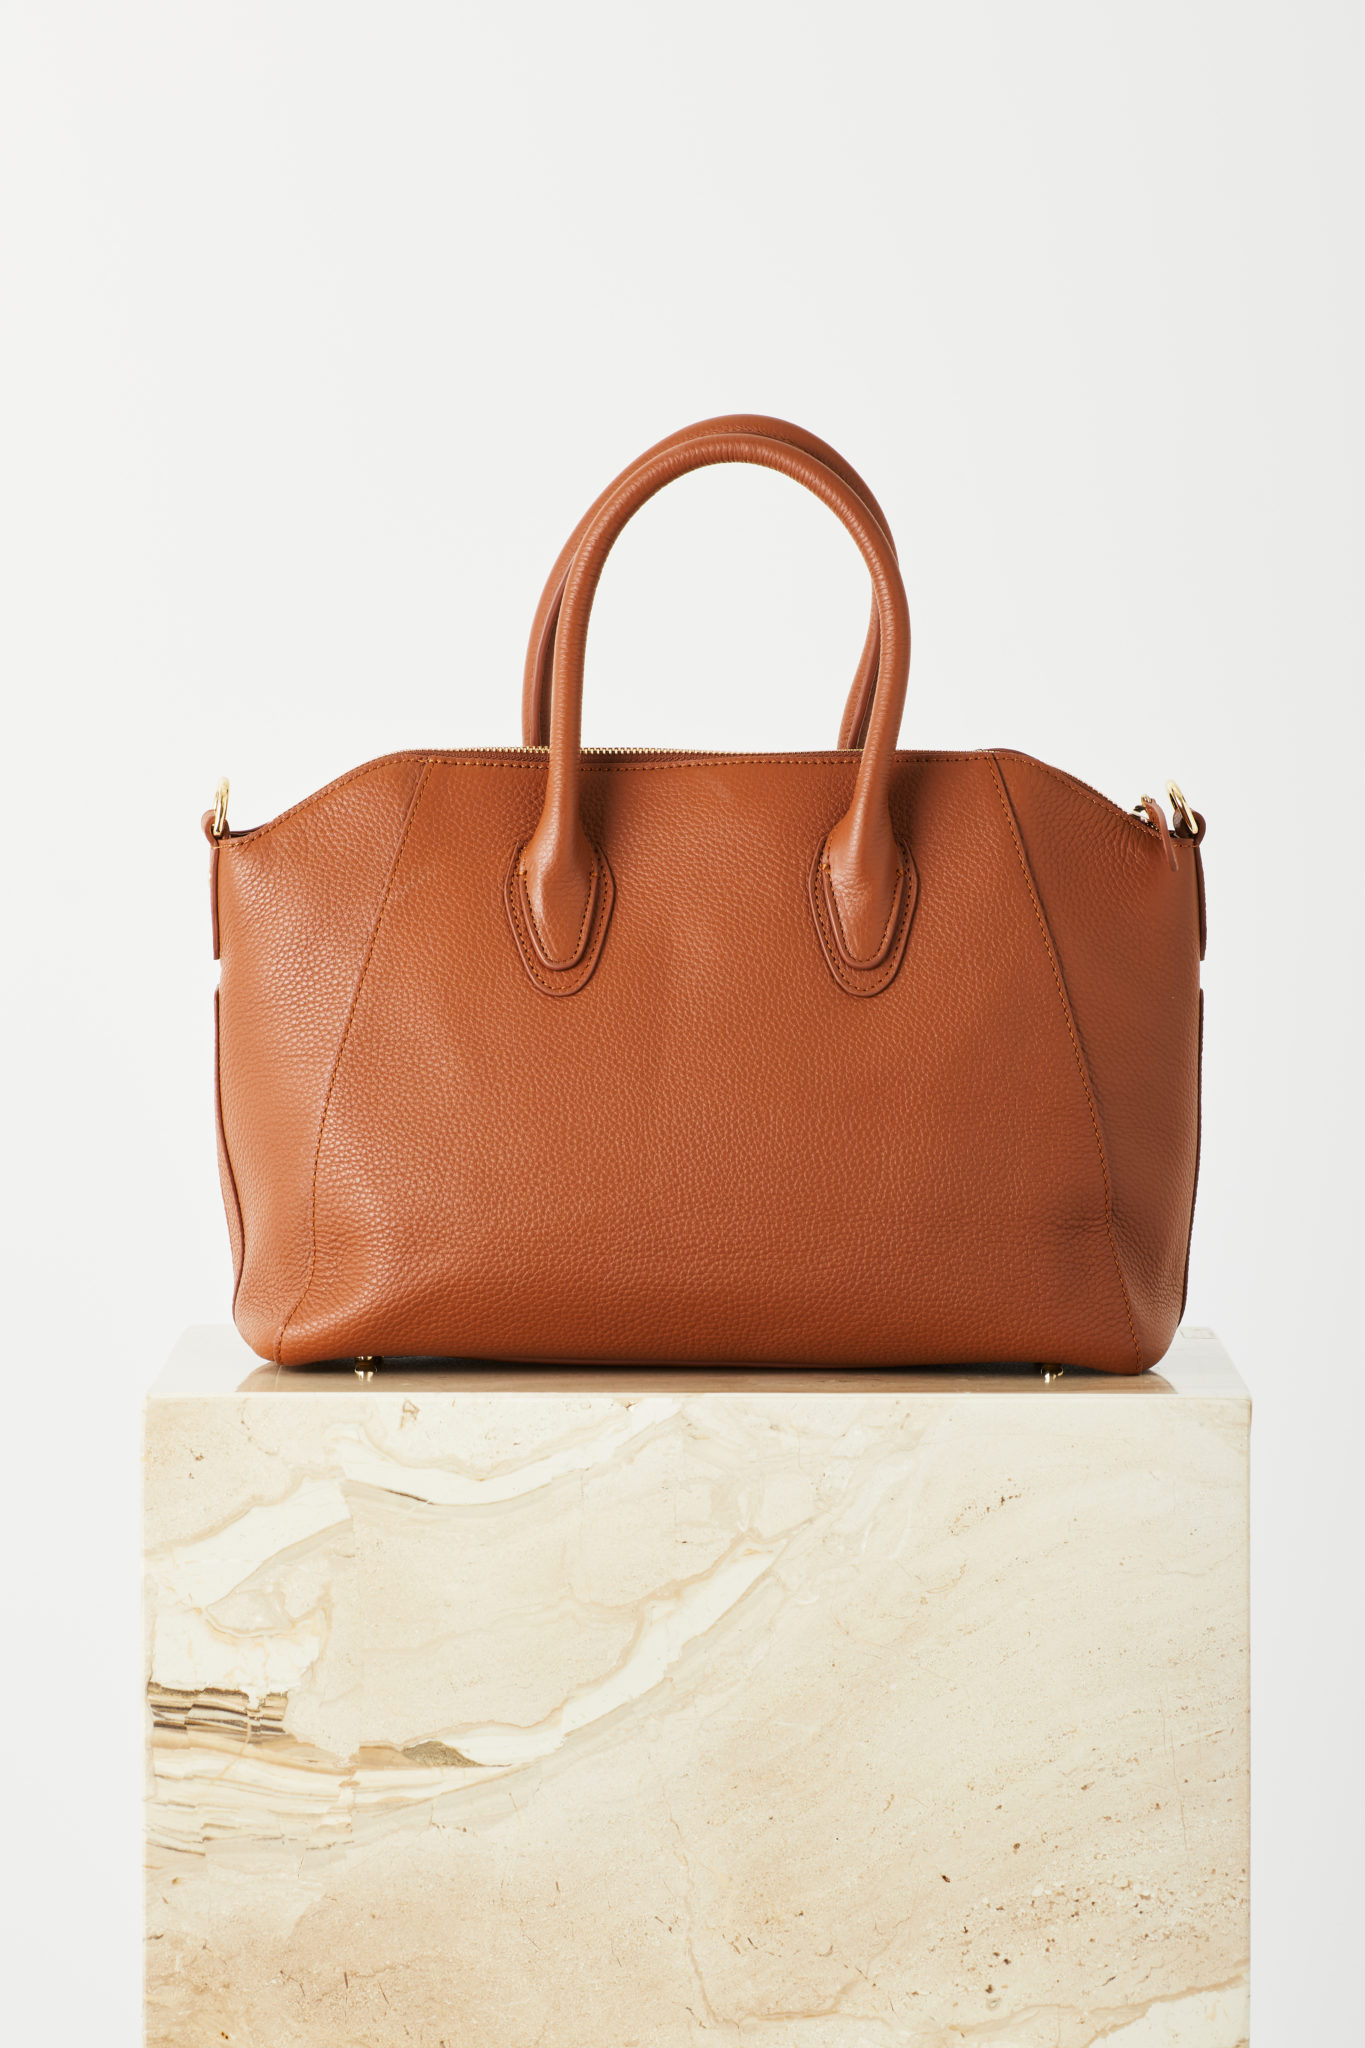 Shaz Tote In Tan Leather